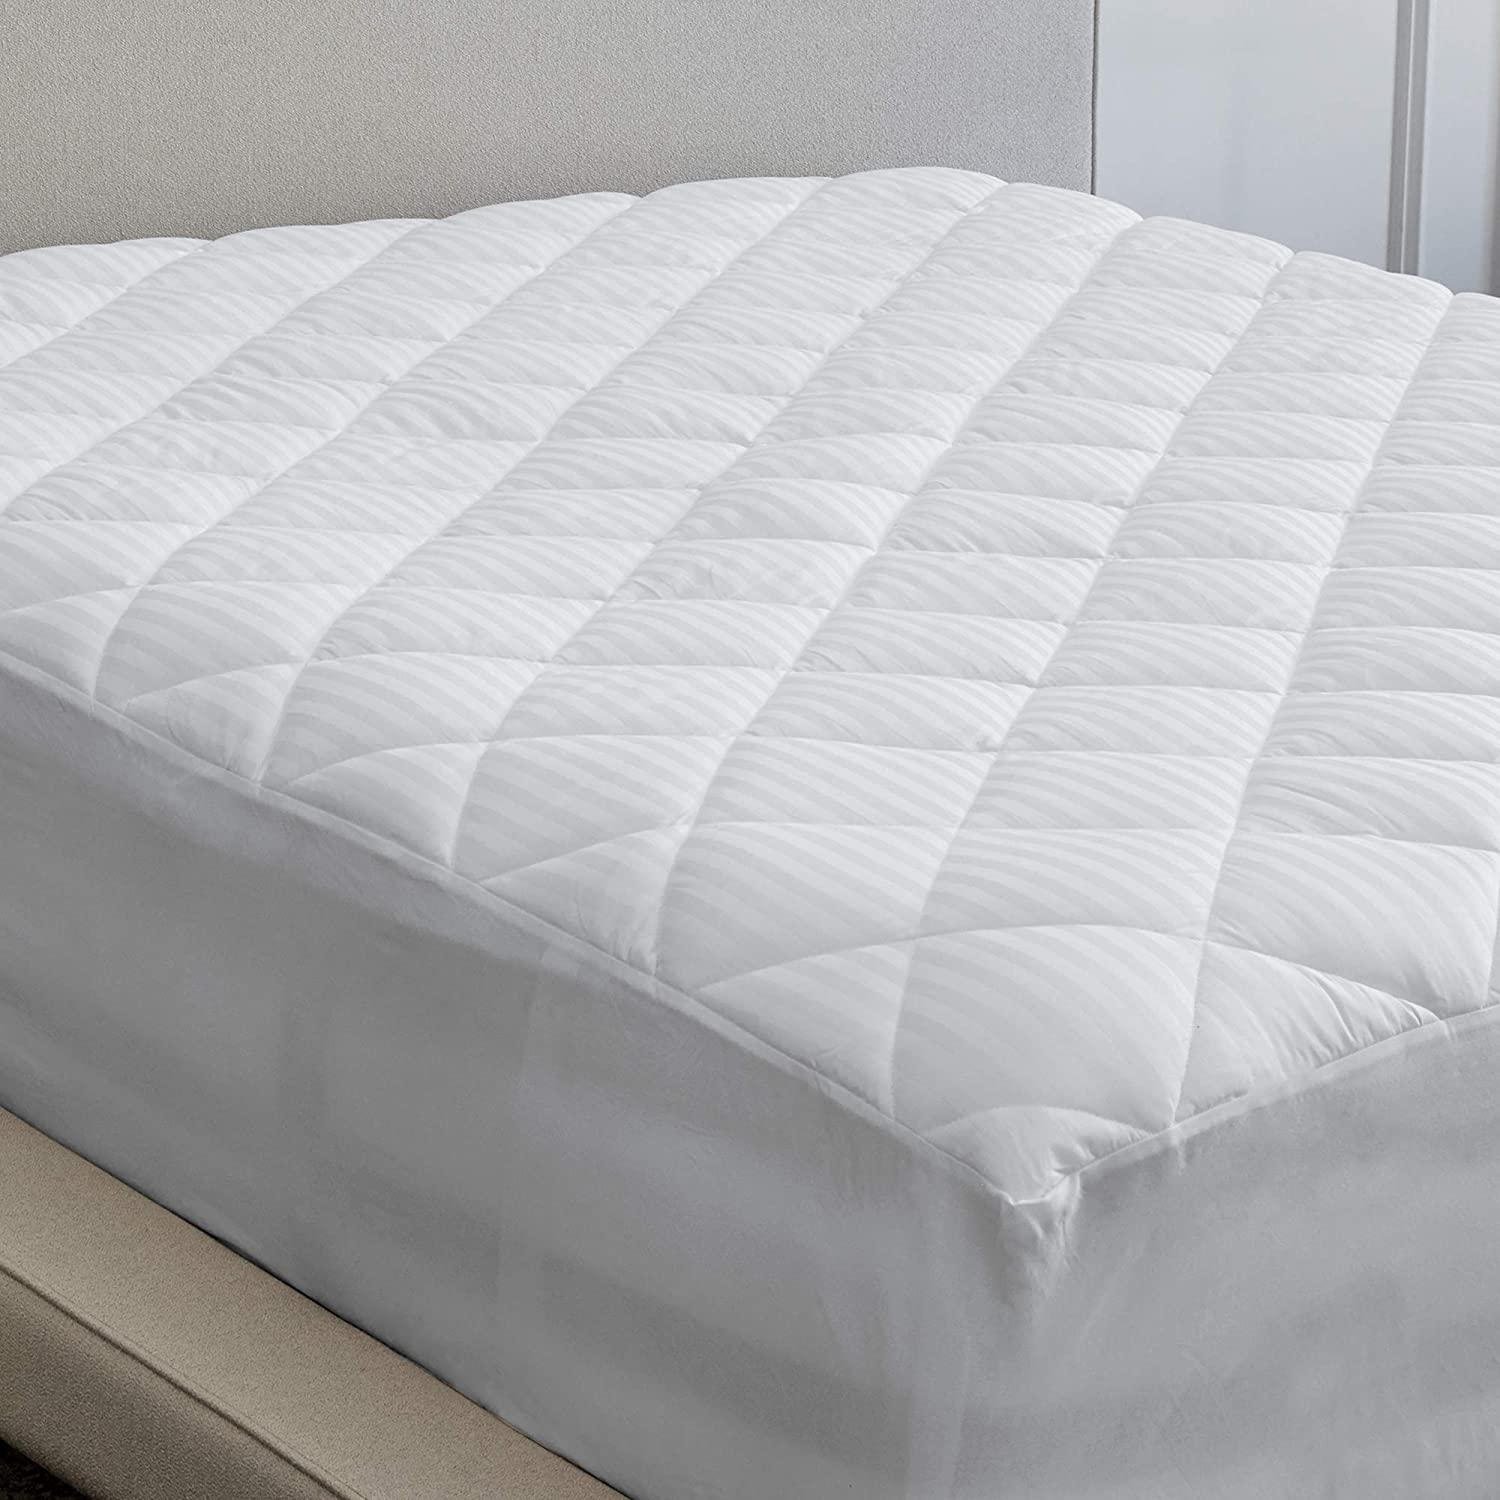 The Luxury Collection Mattress Pad F Quilted Topper Special price for Ranking TOP7 a limited time -